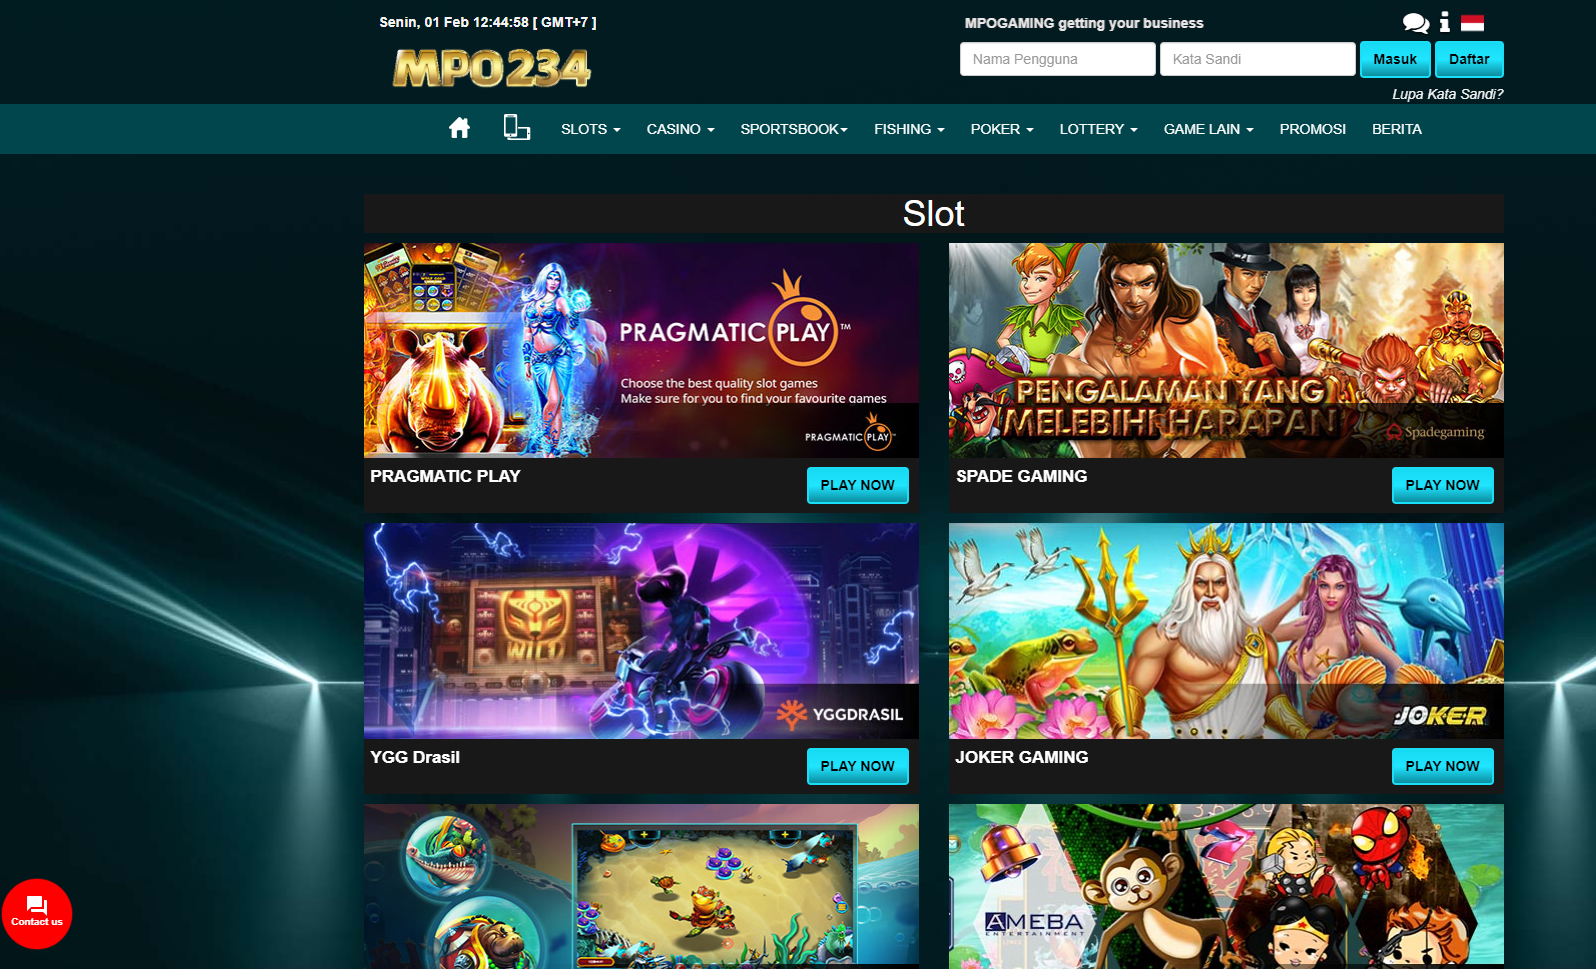 Mpo234 Slot Online Bet Kecil 1000 Indonesia Perfil Red Innpulso Foro